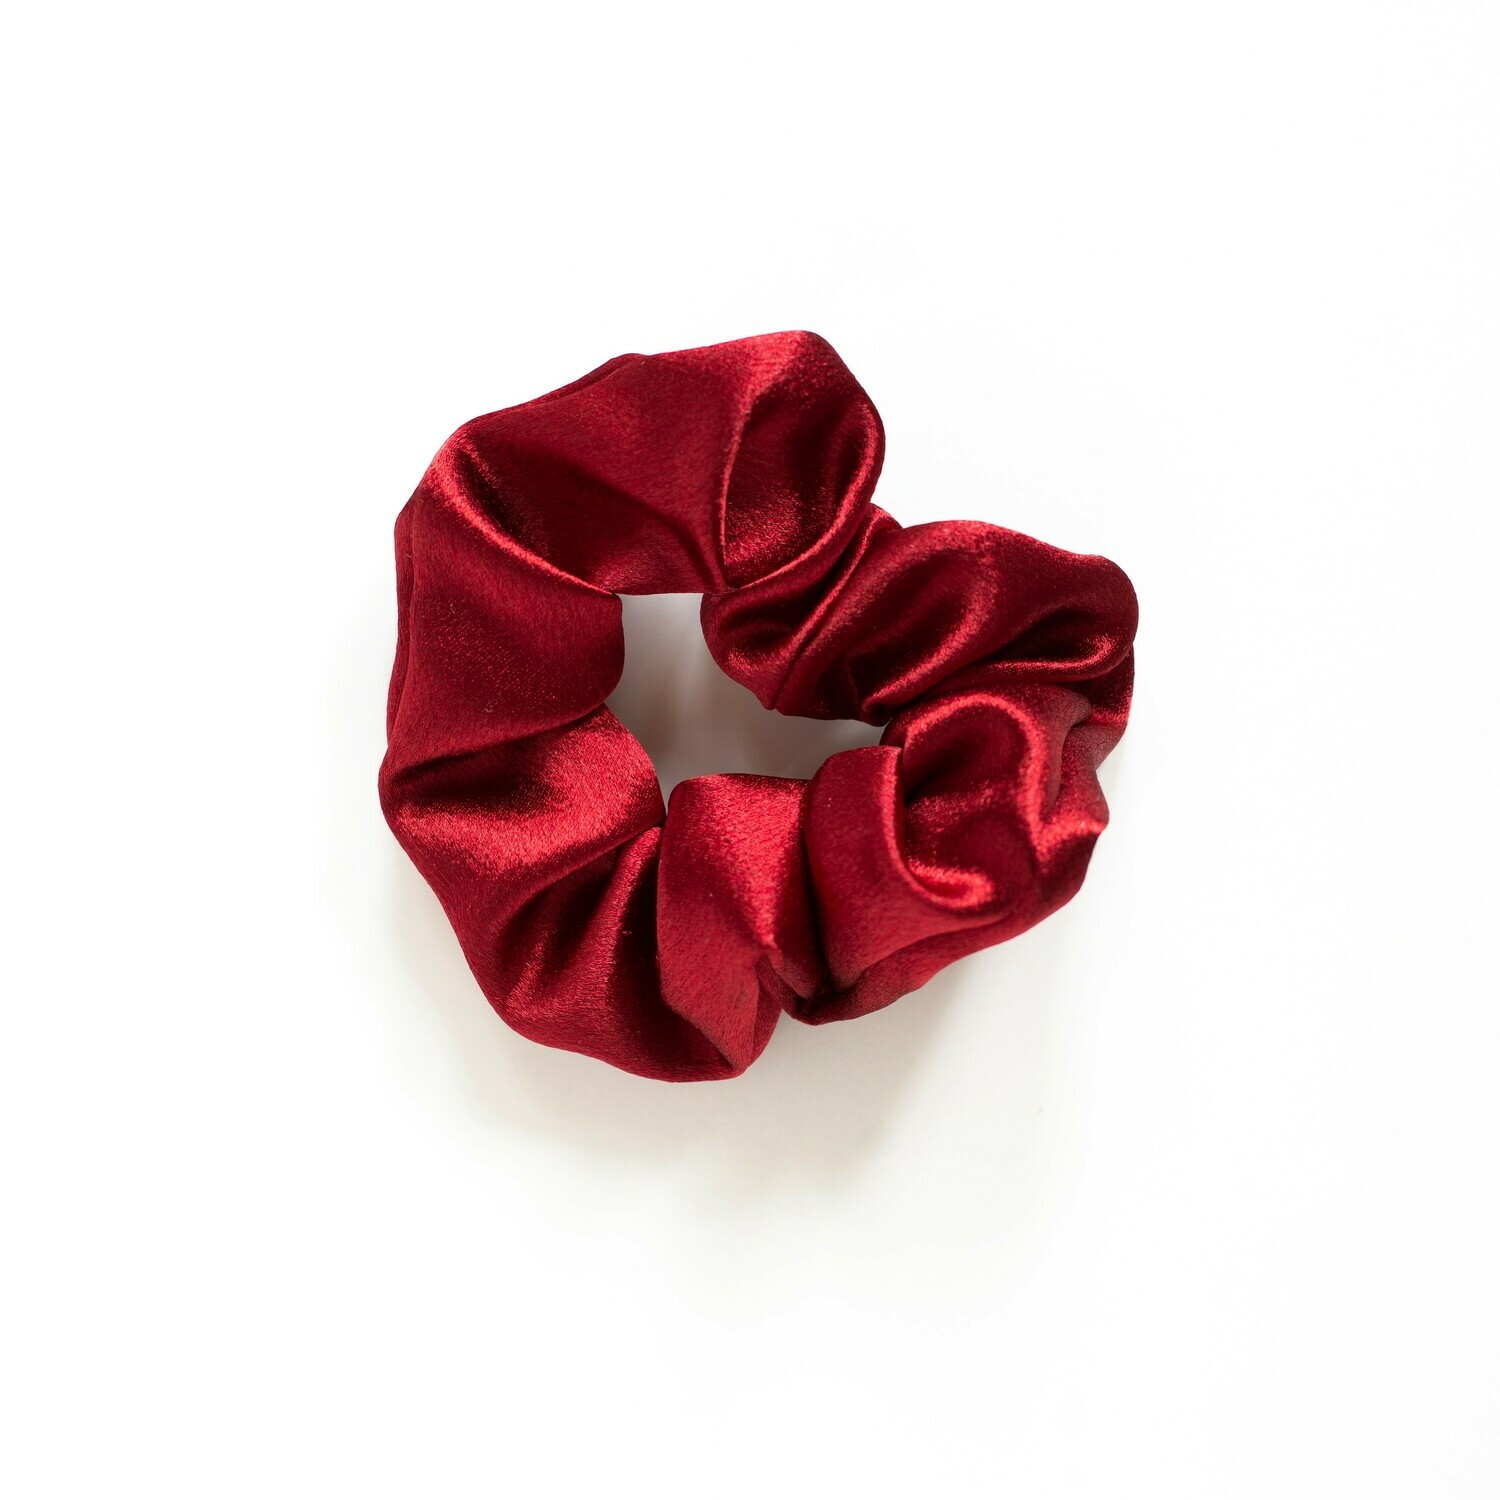 Sunland Scrunchie - Satin - Red